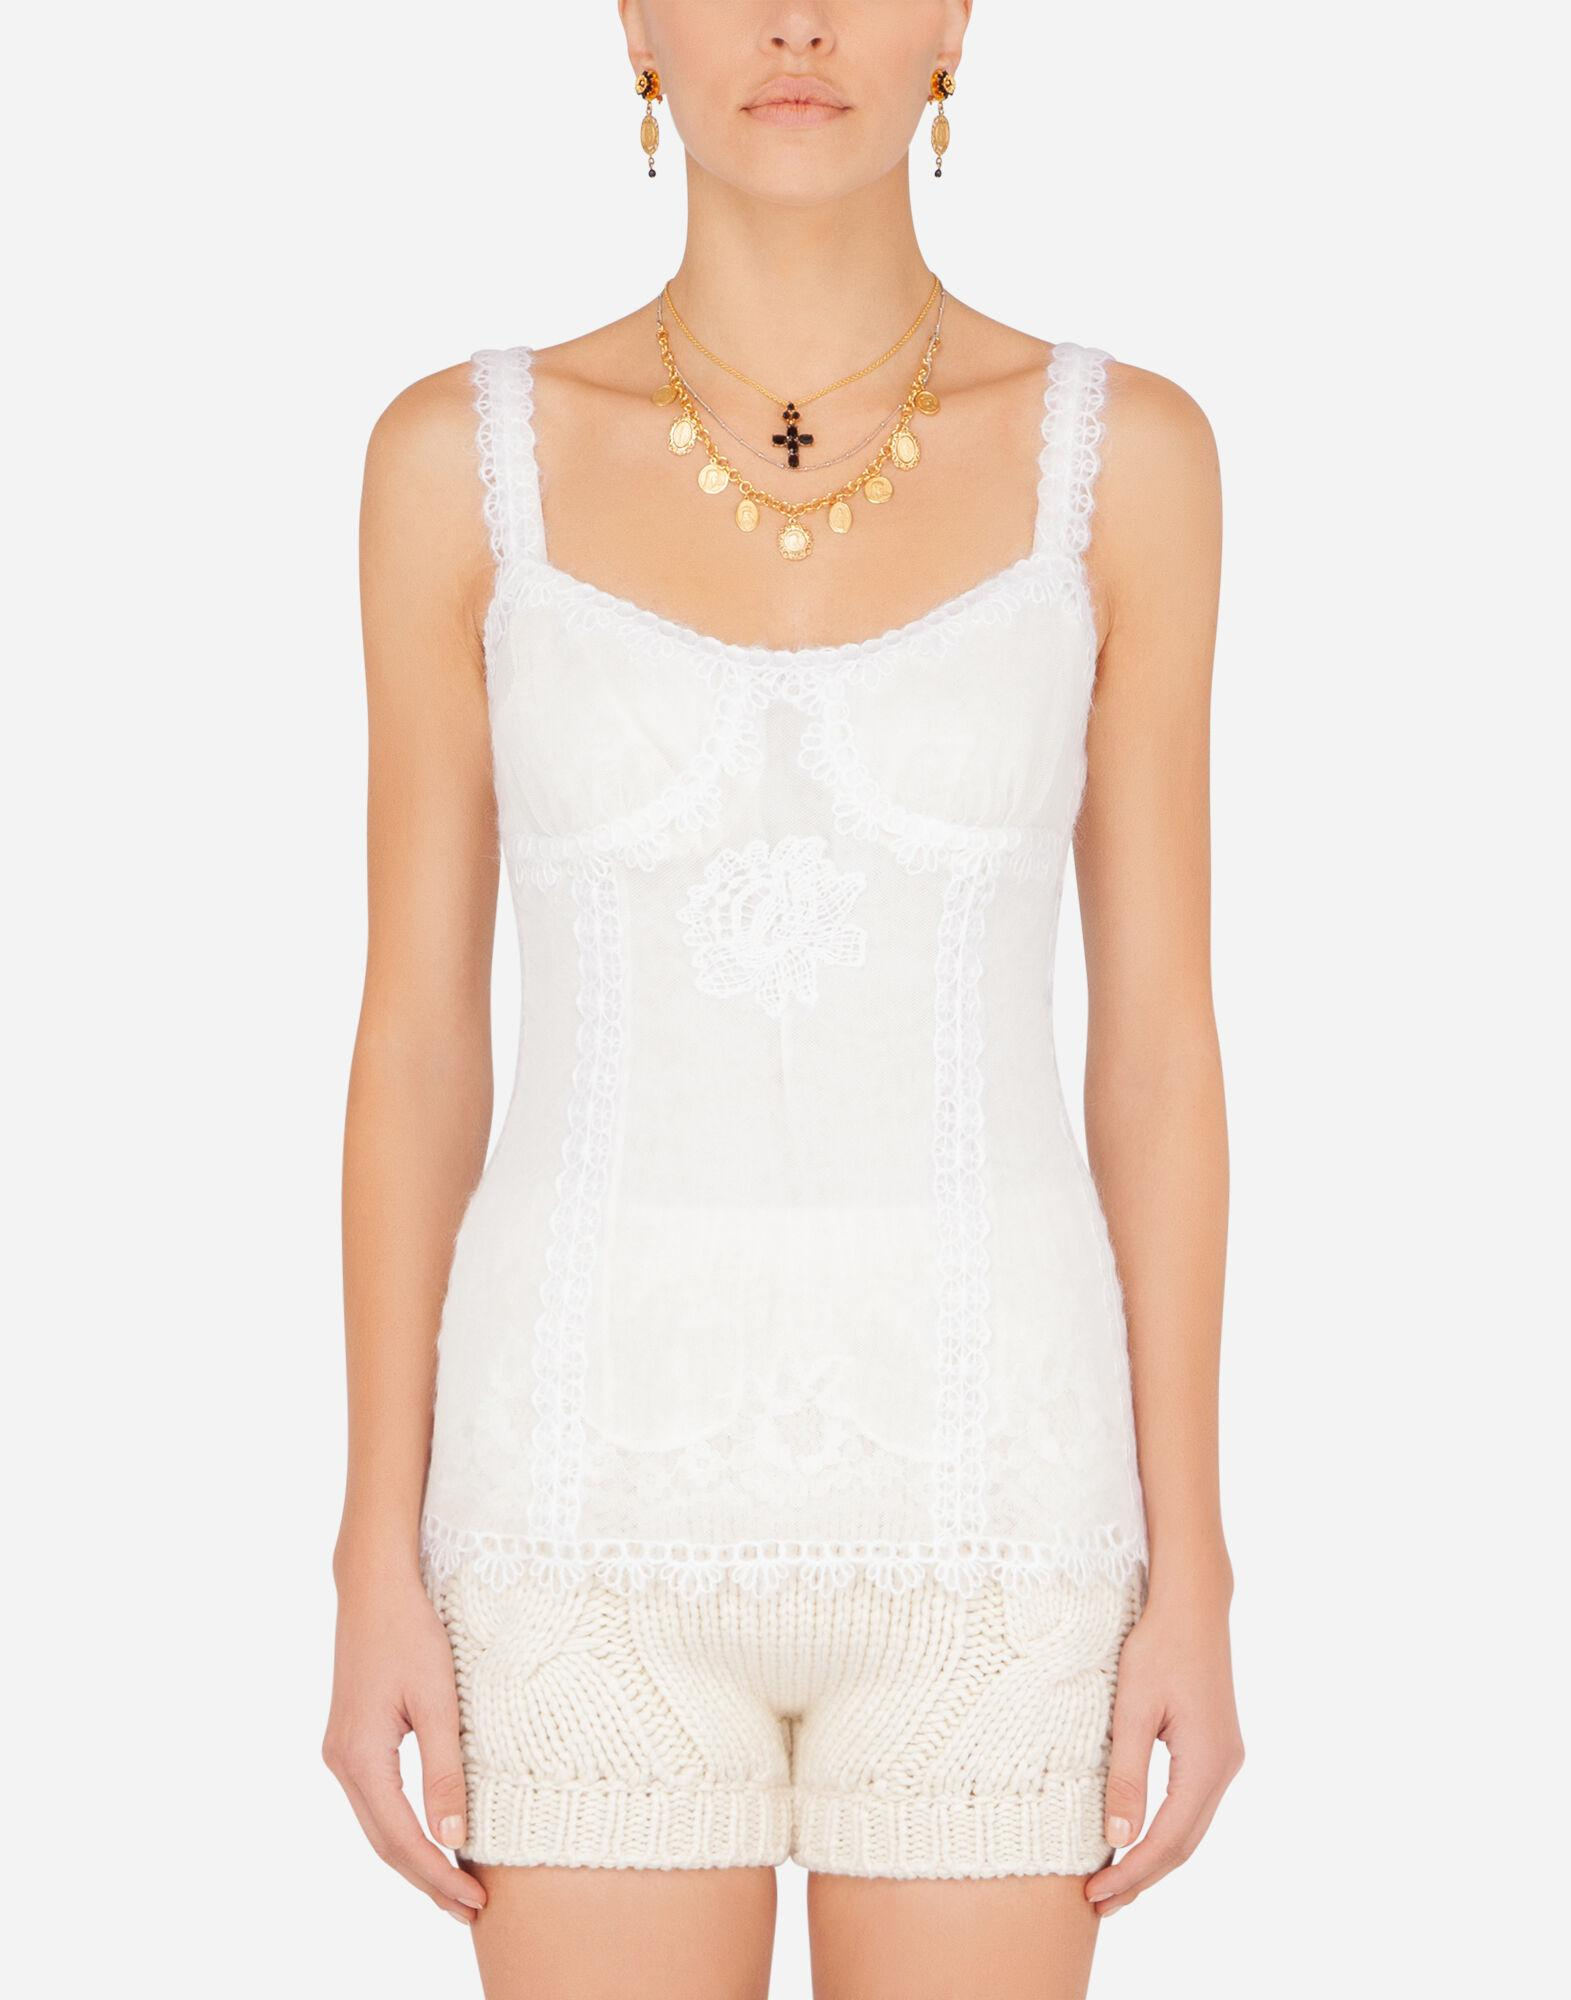 Tulle tank top with embroidery